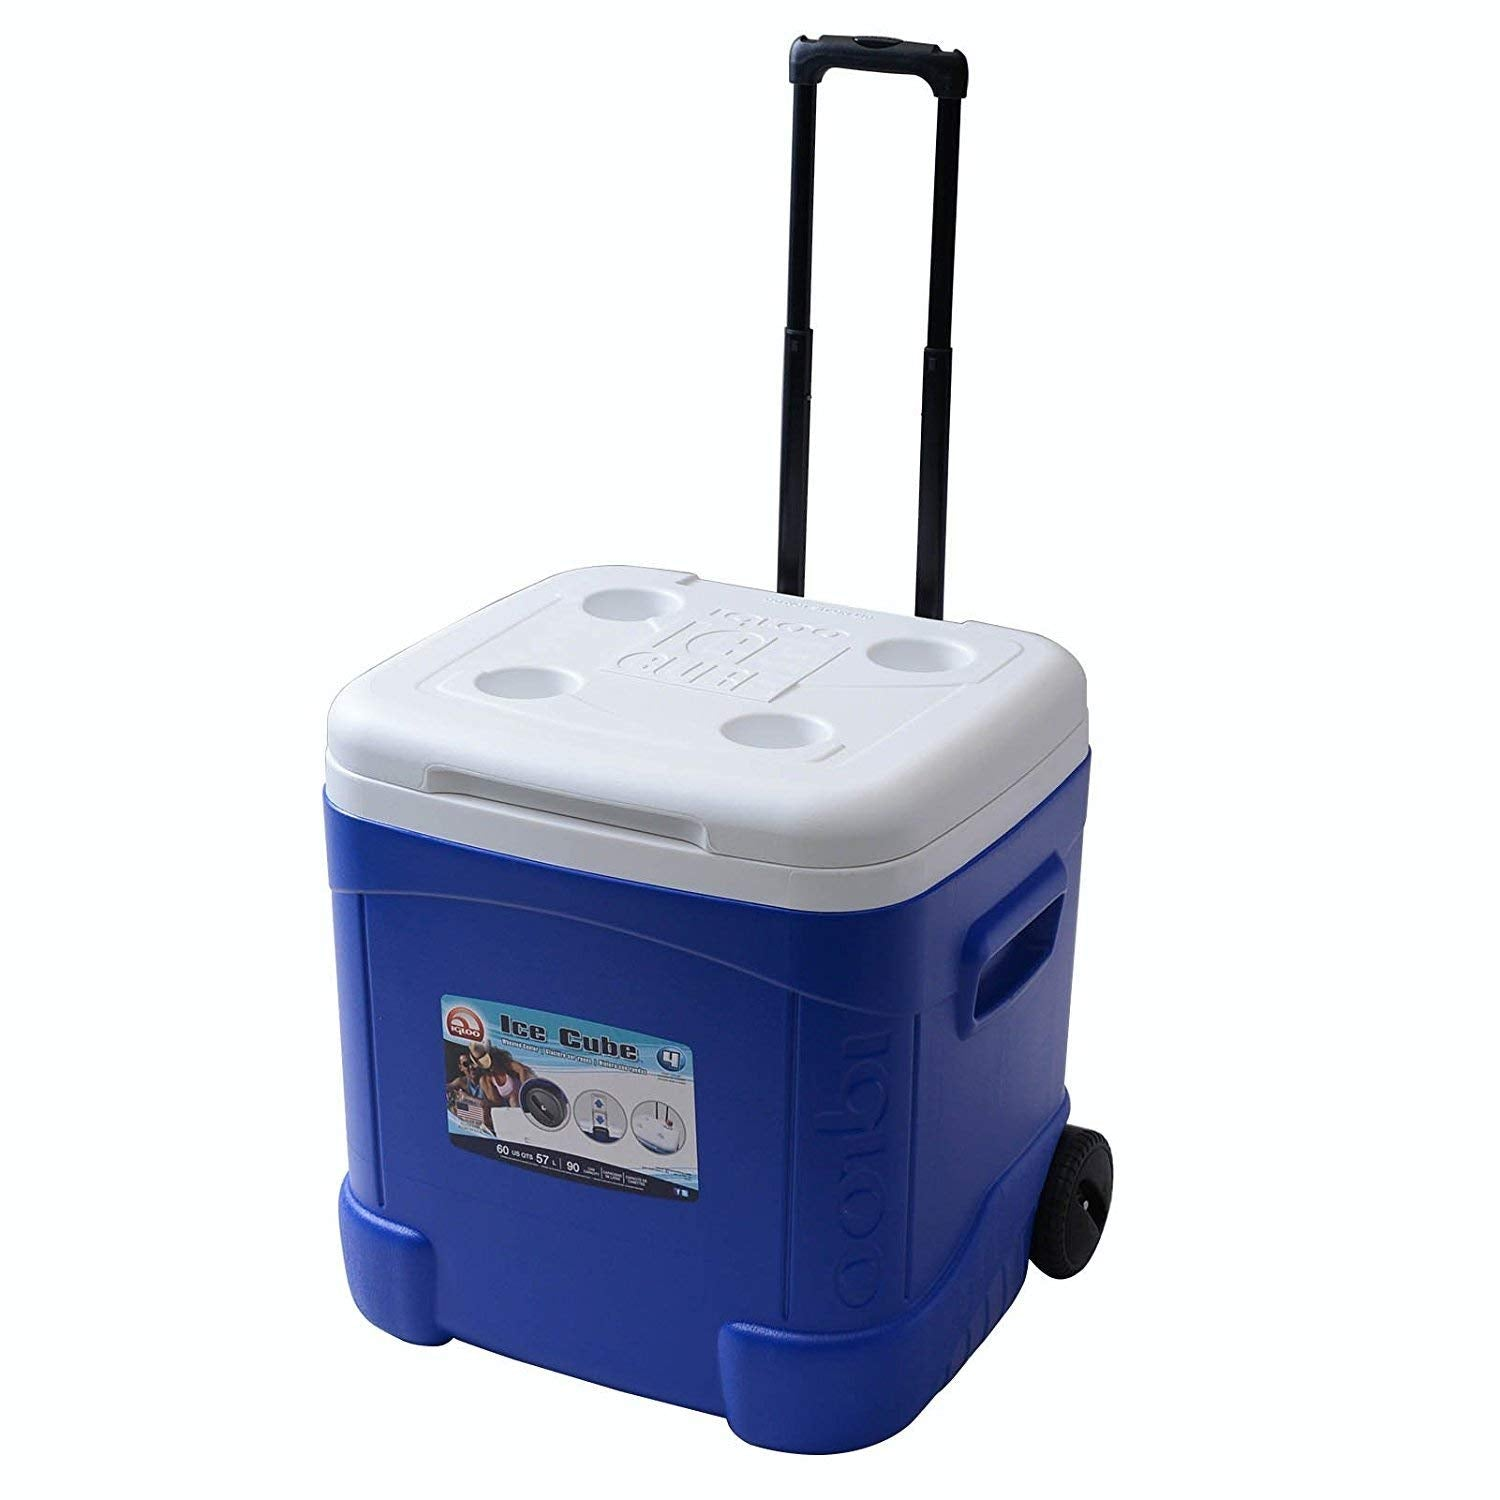 Igloo 45097 Ice Cube Roller Cooler 60Qt